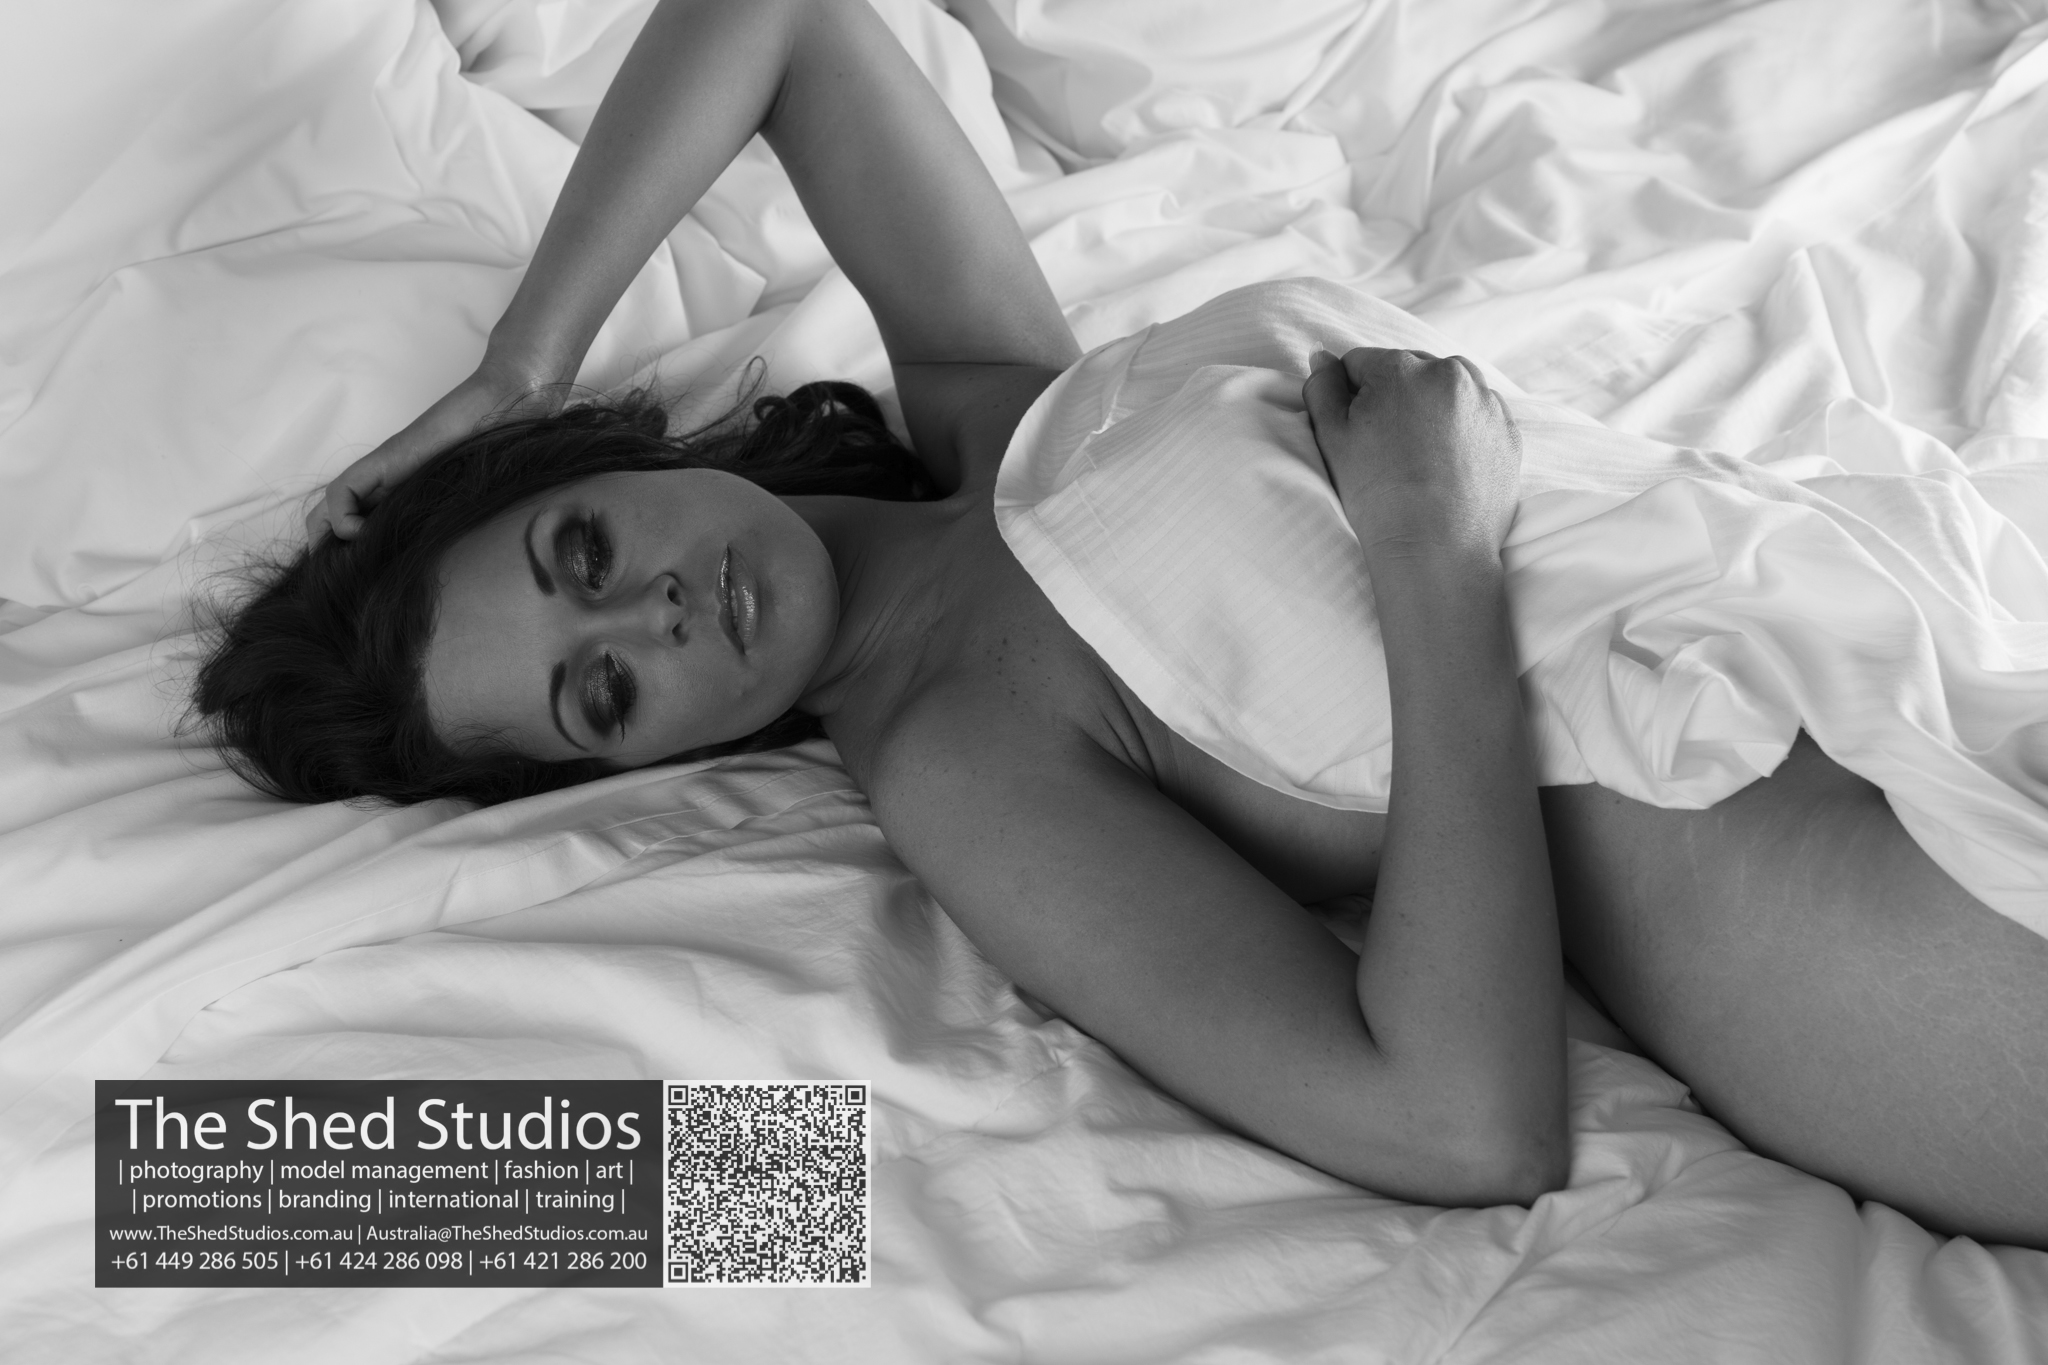 Miss C by BK @ The Shed Studios